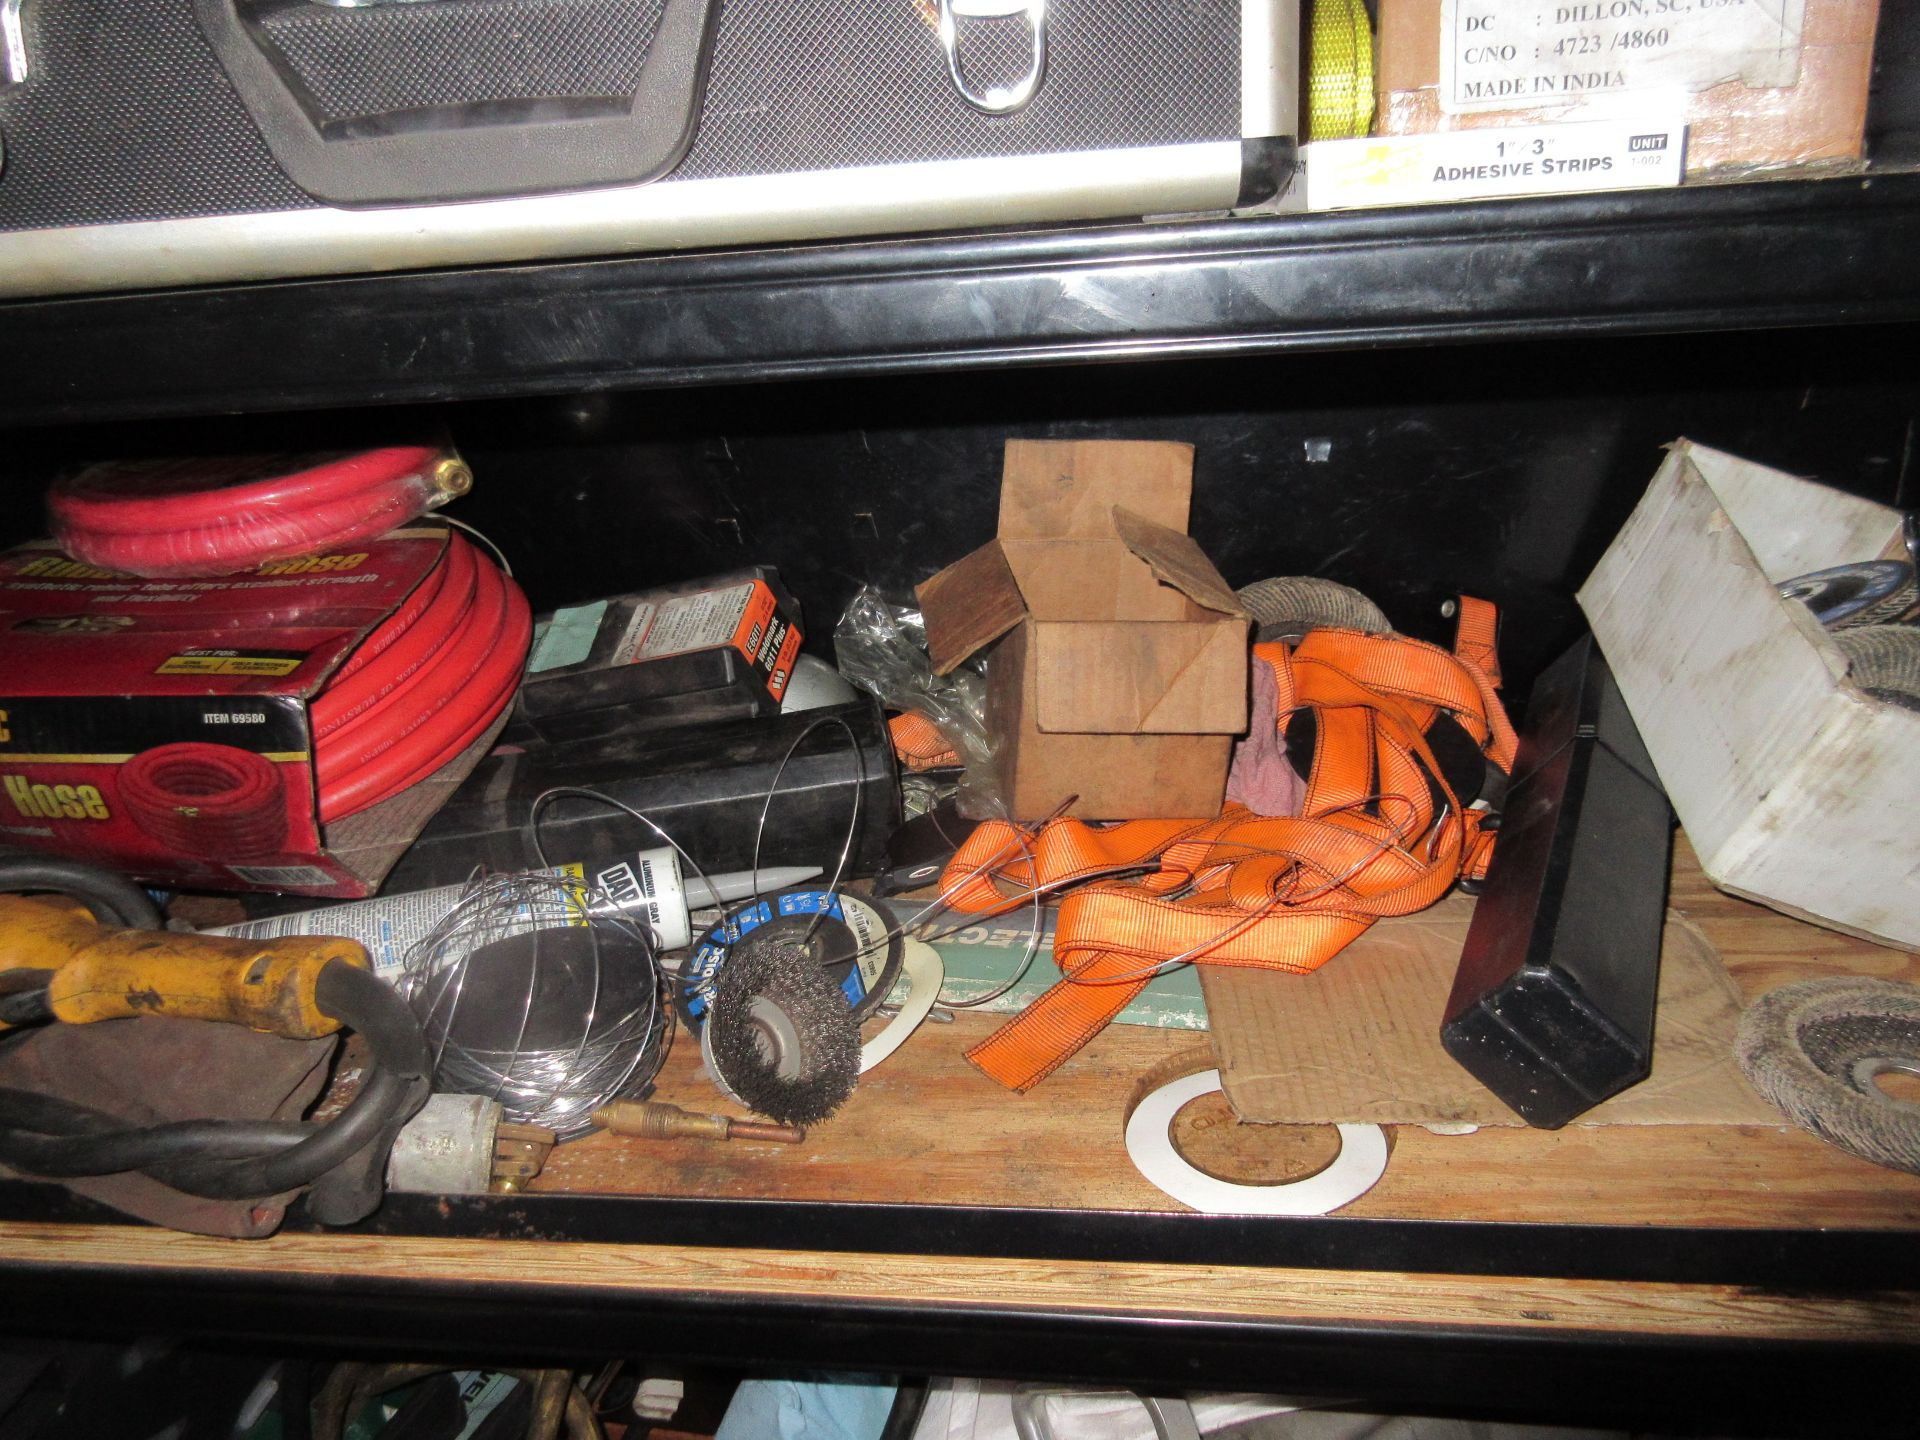 Hand & Electric Tools in Cabinet - Image 4 of 7